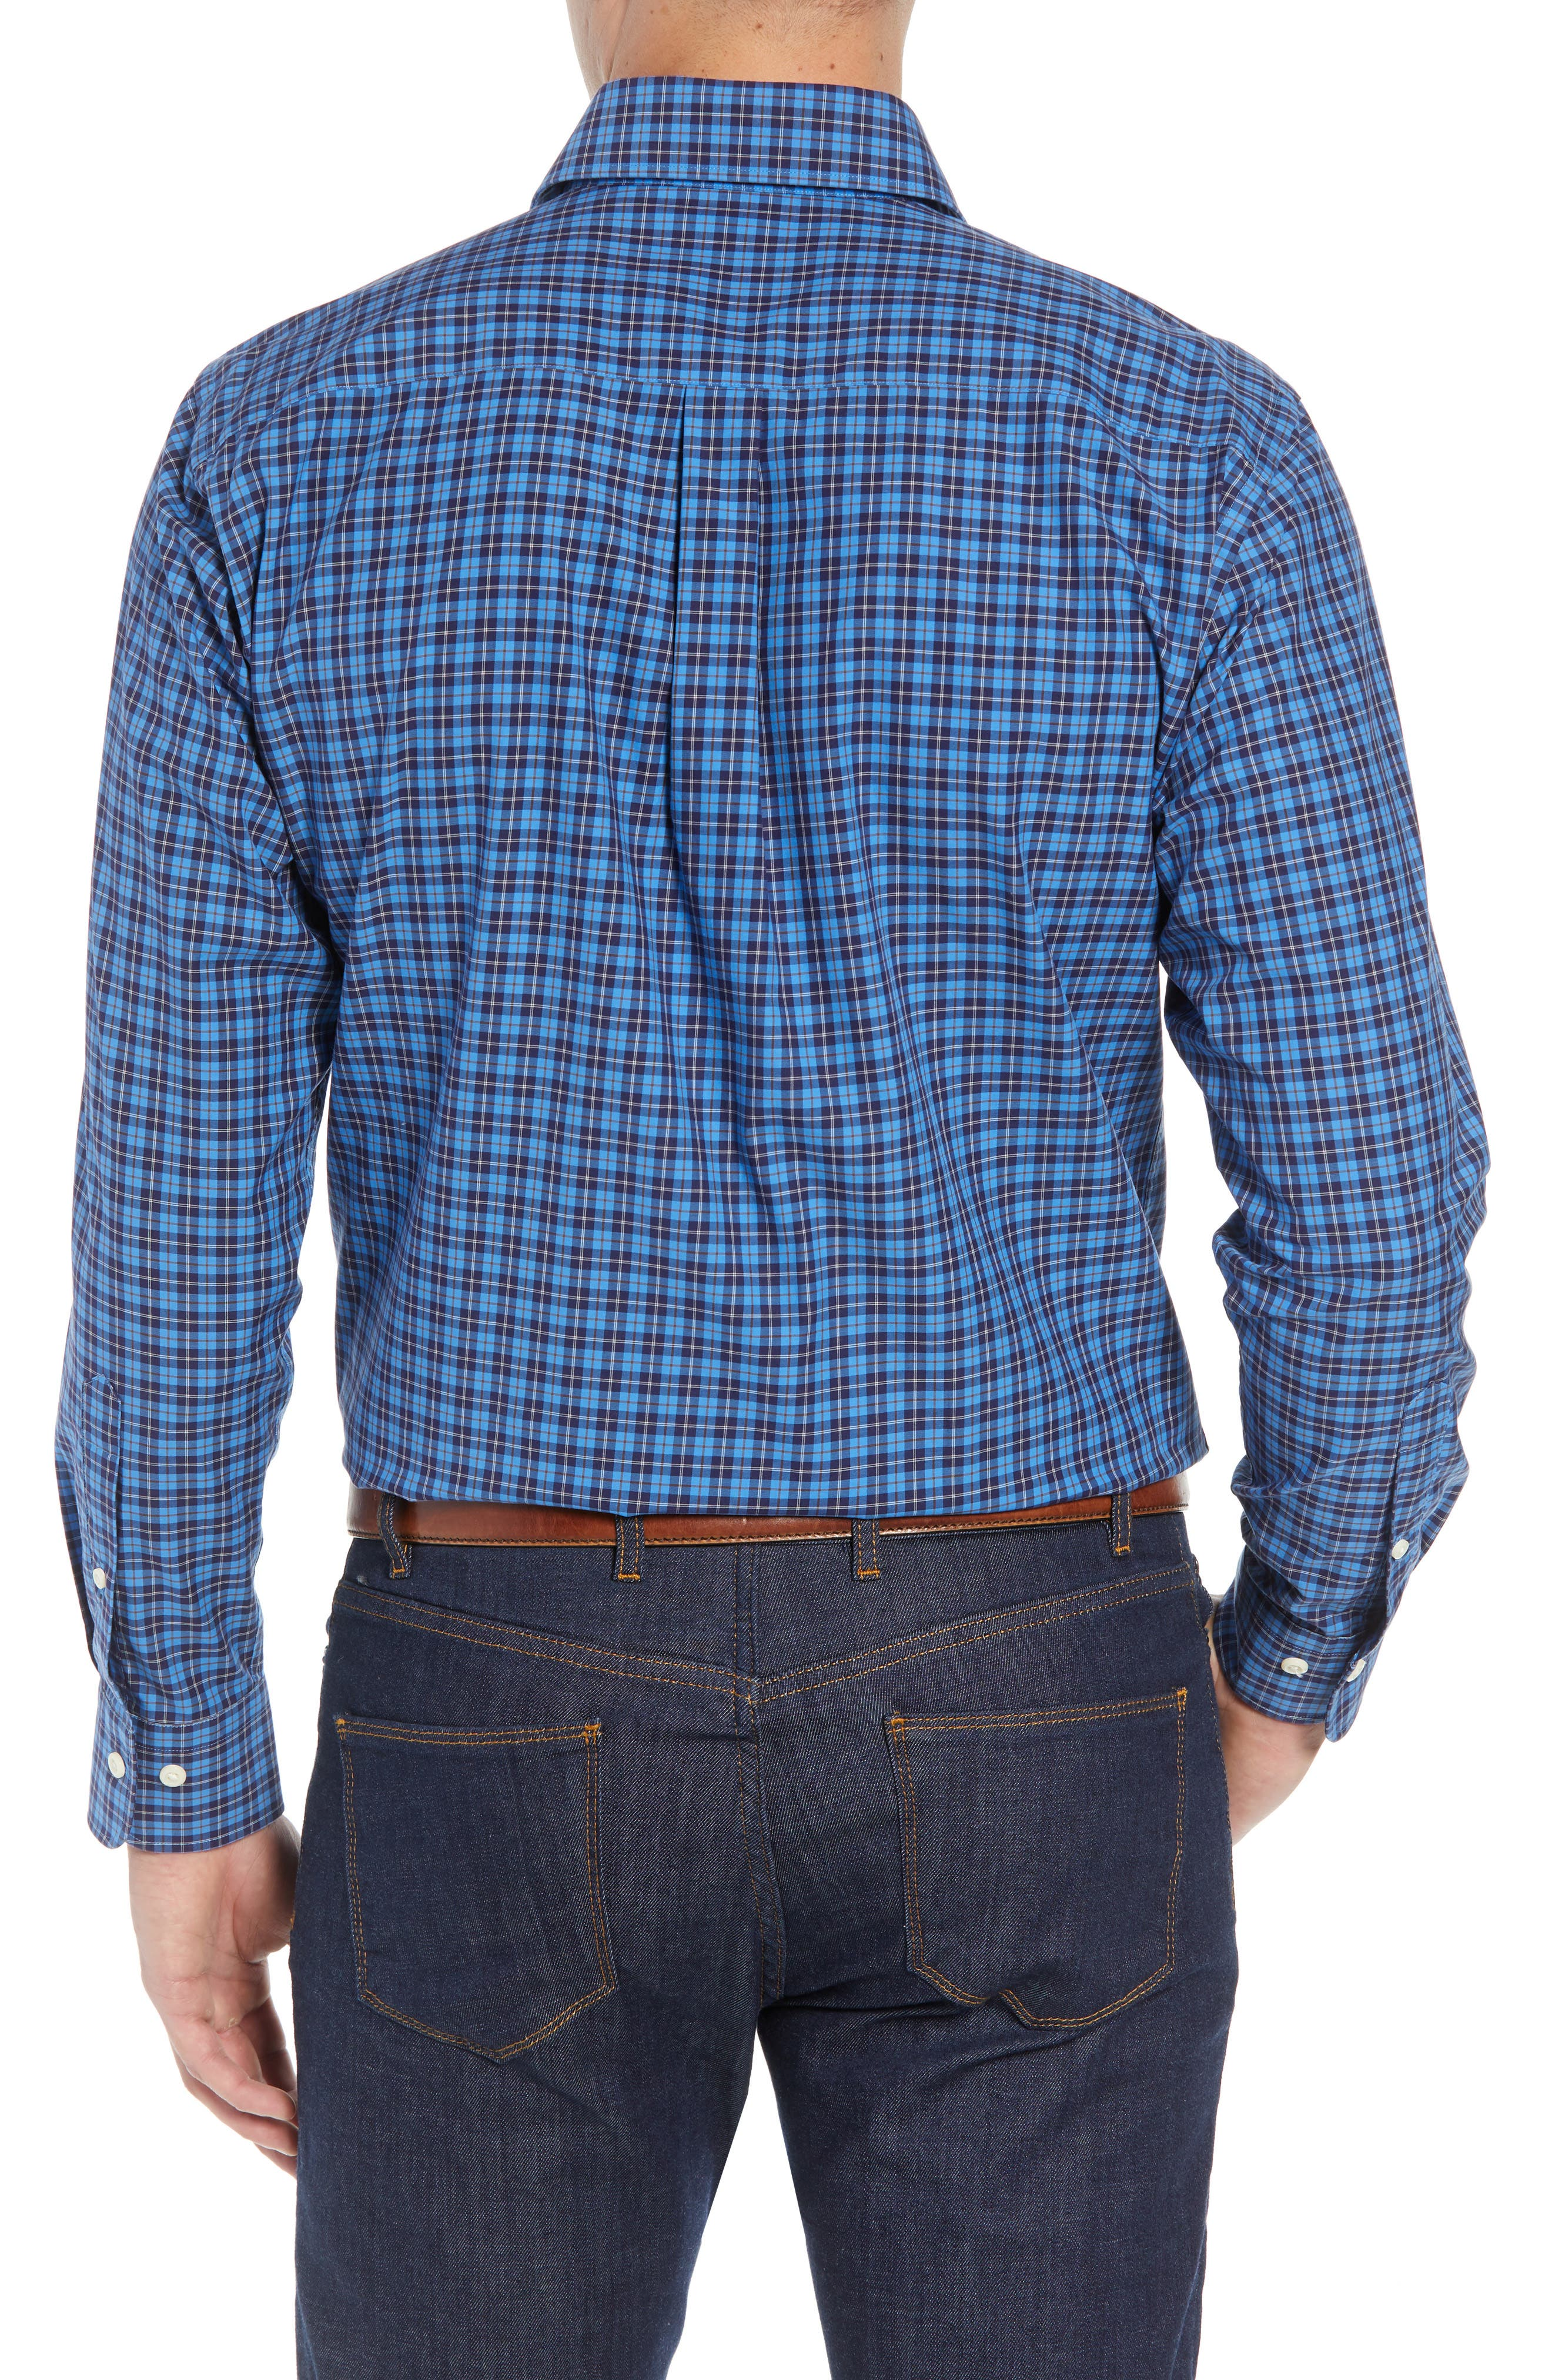 Northgate Plaid Sport Shirt,                             Alternate thumbnail 3, color,                             MARINA BLUE